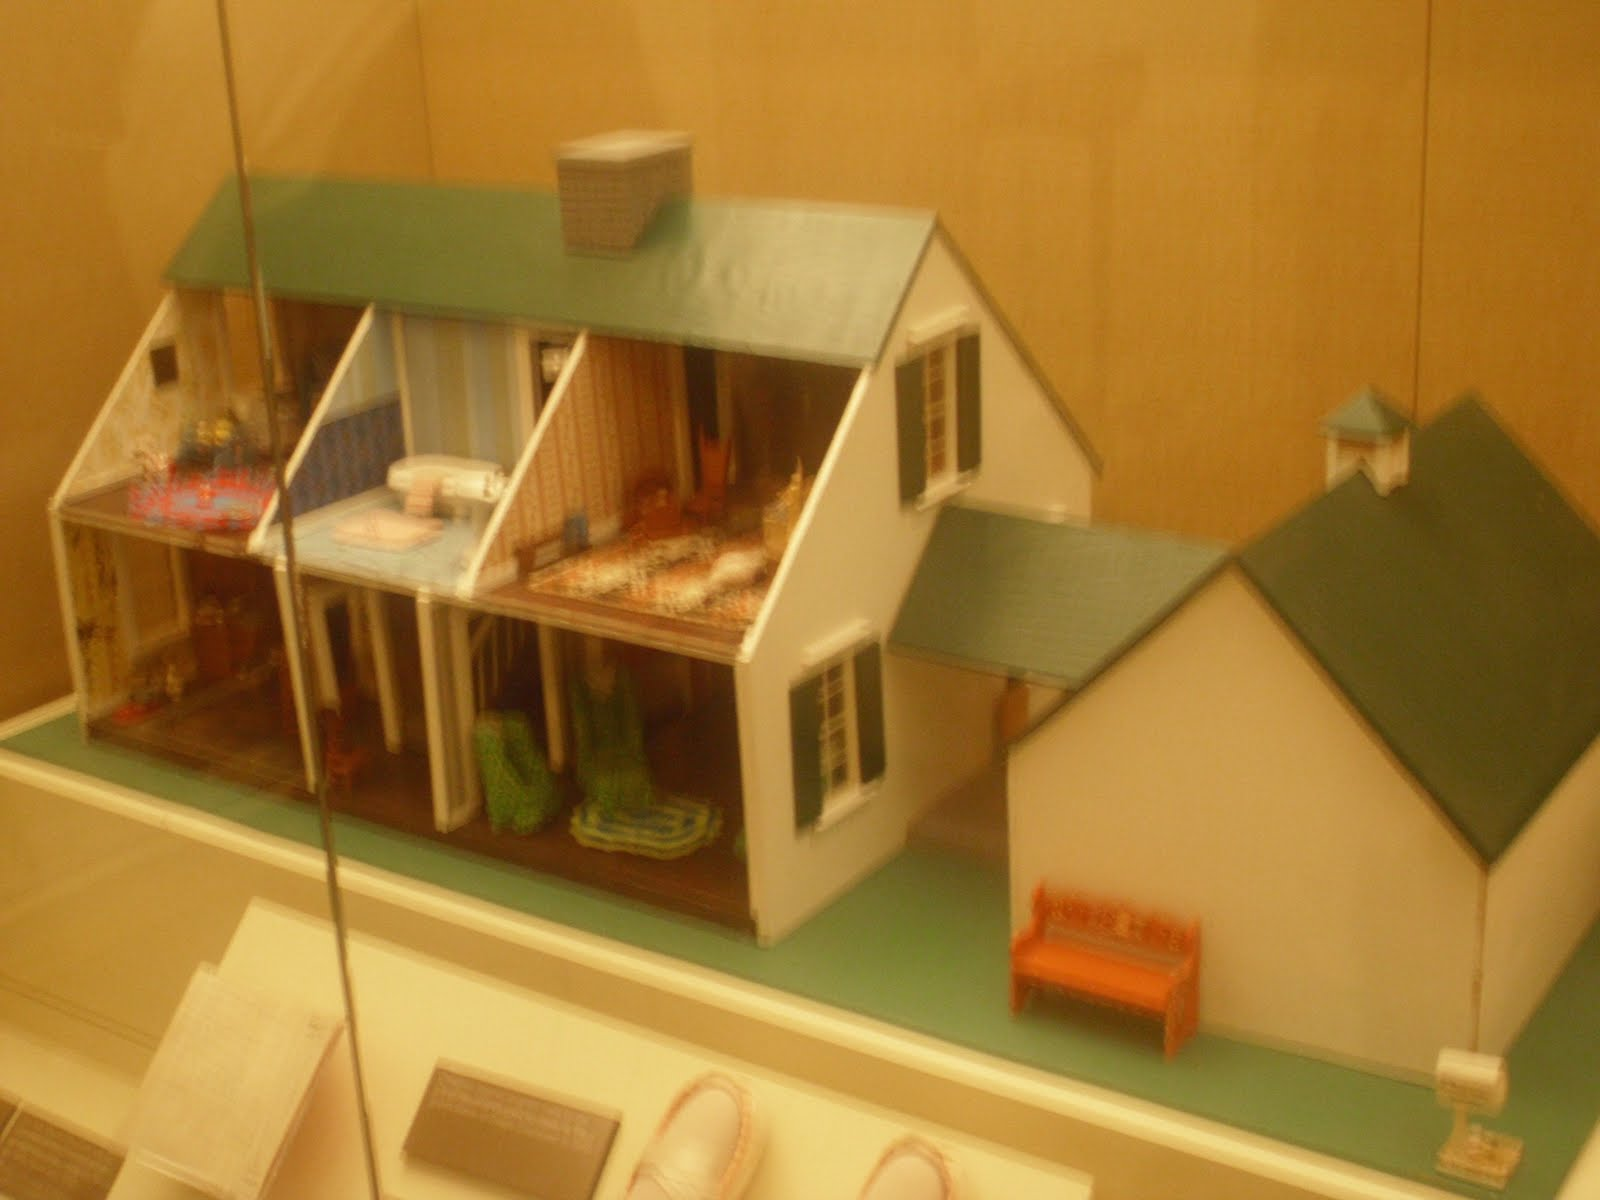 Dollhouse Exhibition And Toy: Tulsa Tiny Stuff: Smithsonian Miniature Finds